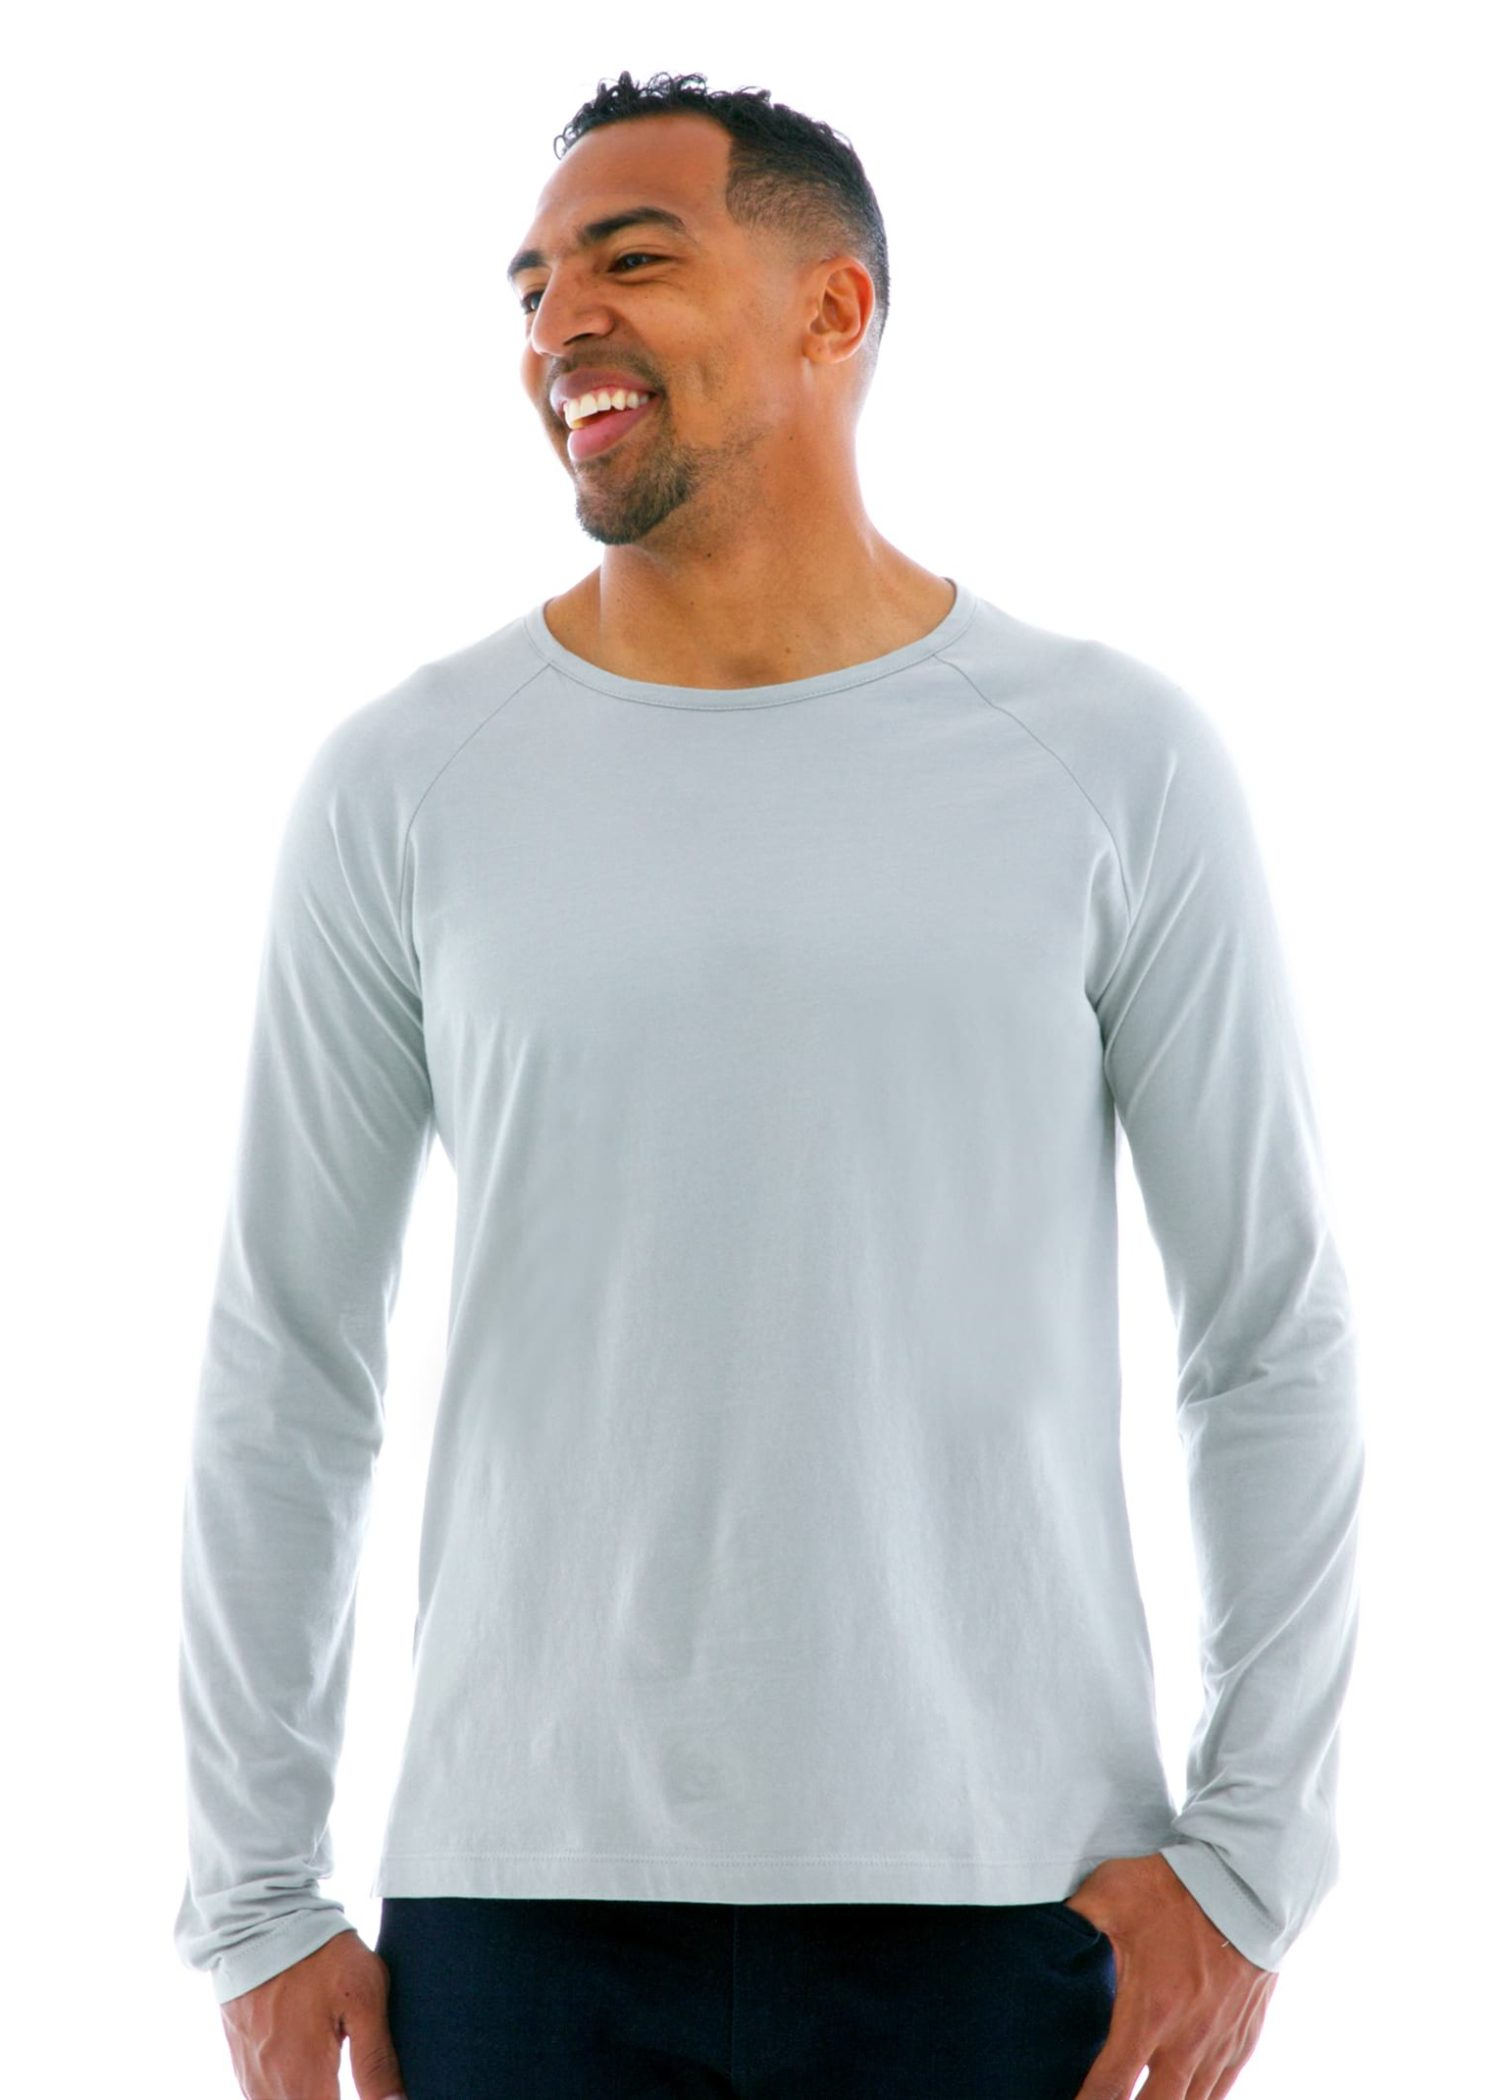 Long Sleeve Raglan Crew T-Shirt Front View